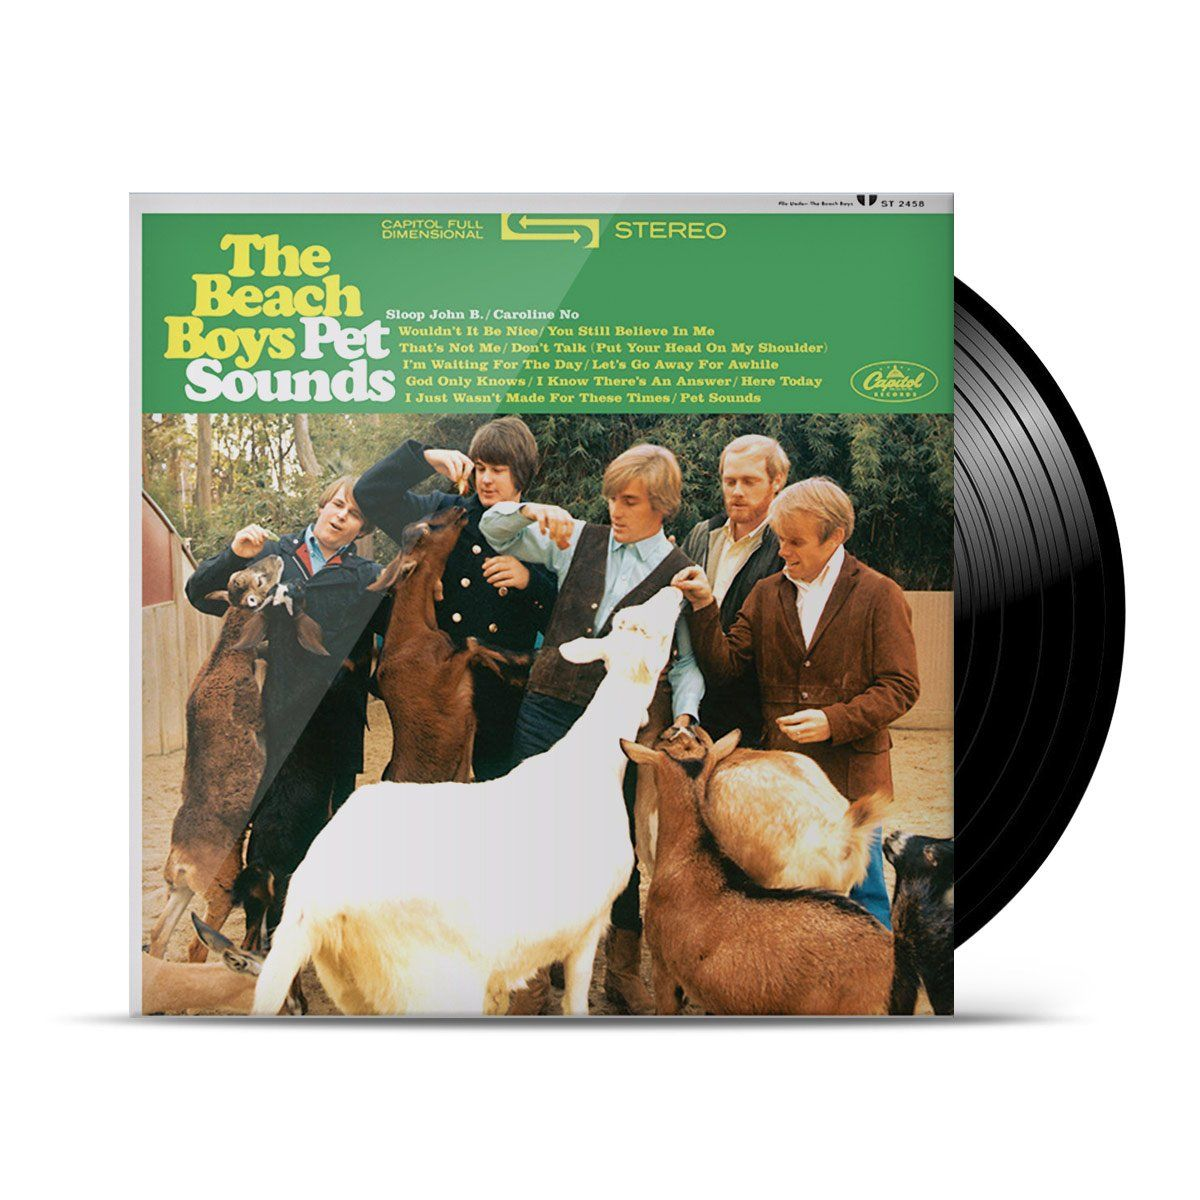 LP The Beach Boys Pet Sounds (Stereo)